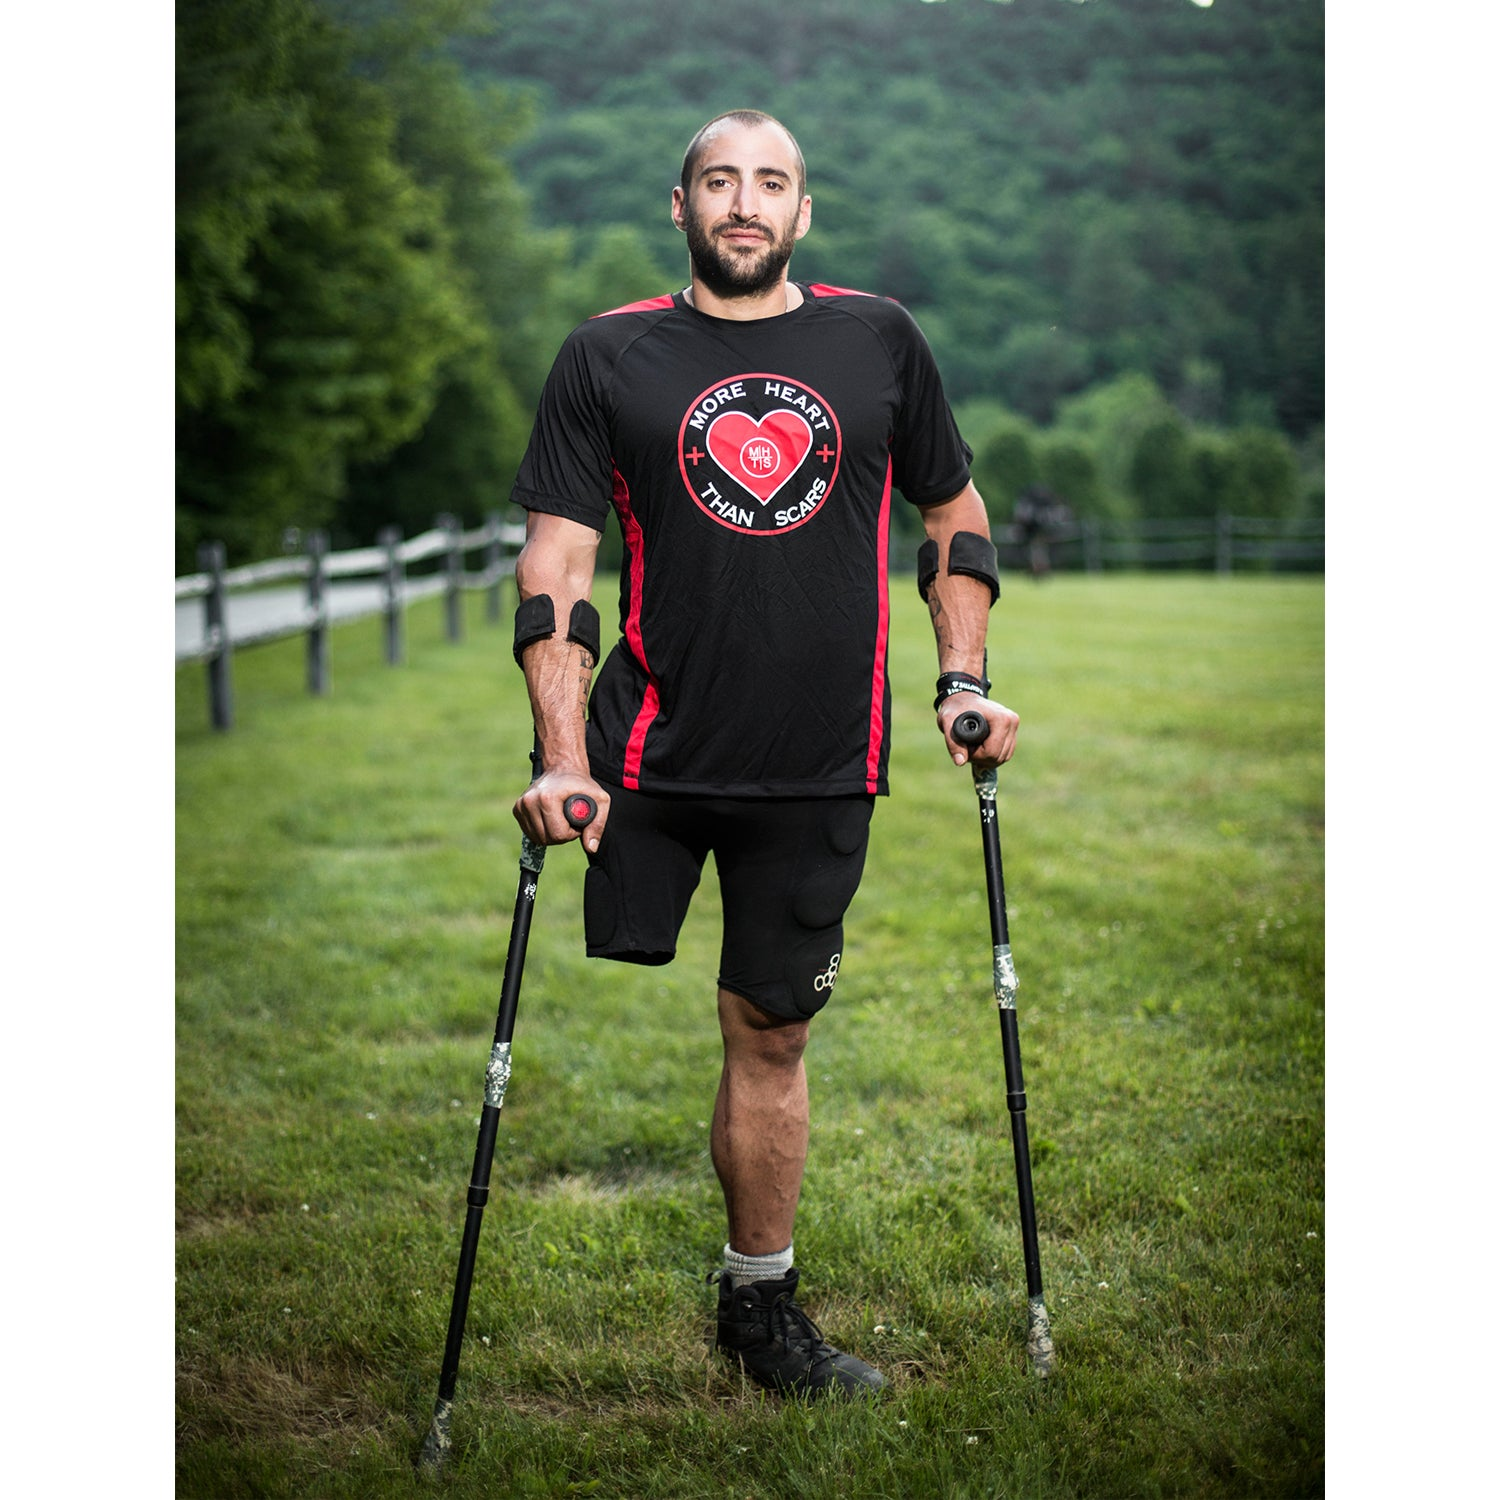 Matthew Pietro lost his leg in motorcycle accident after returning from combat. Struggling with his health and PTSD, Pietro joined More Heart Than Scars and has competed in a variety of Spartan races, and even completed the Spartan Trifecta.